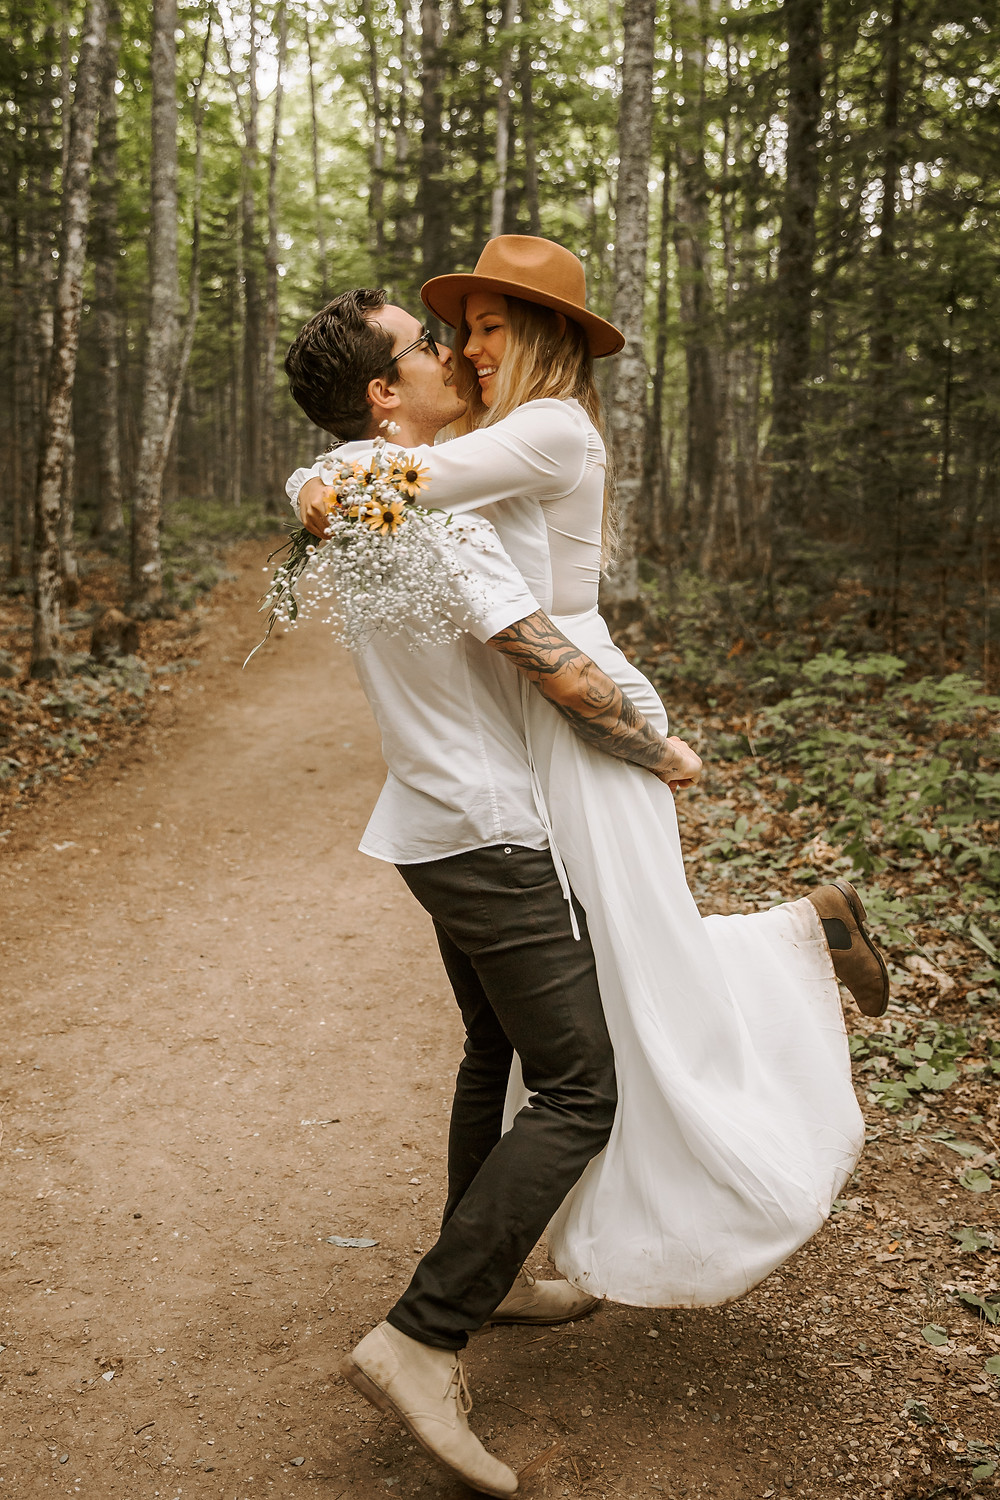 Bride and groom portraits after elopement in a Michigan forest trail holding a wildflower bouquet.